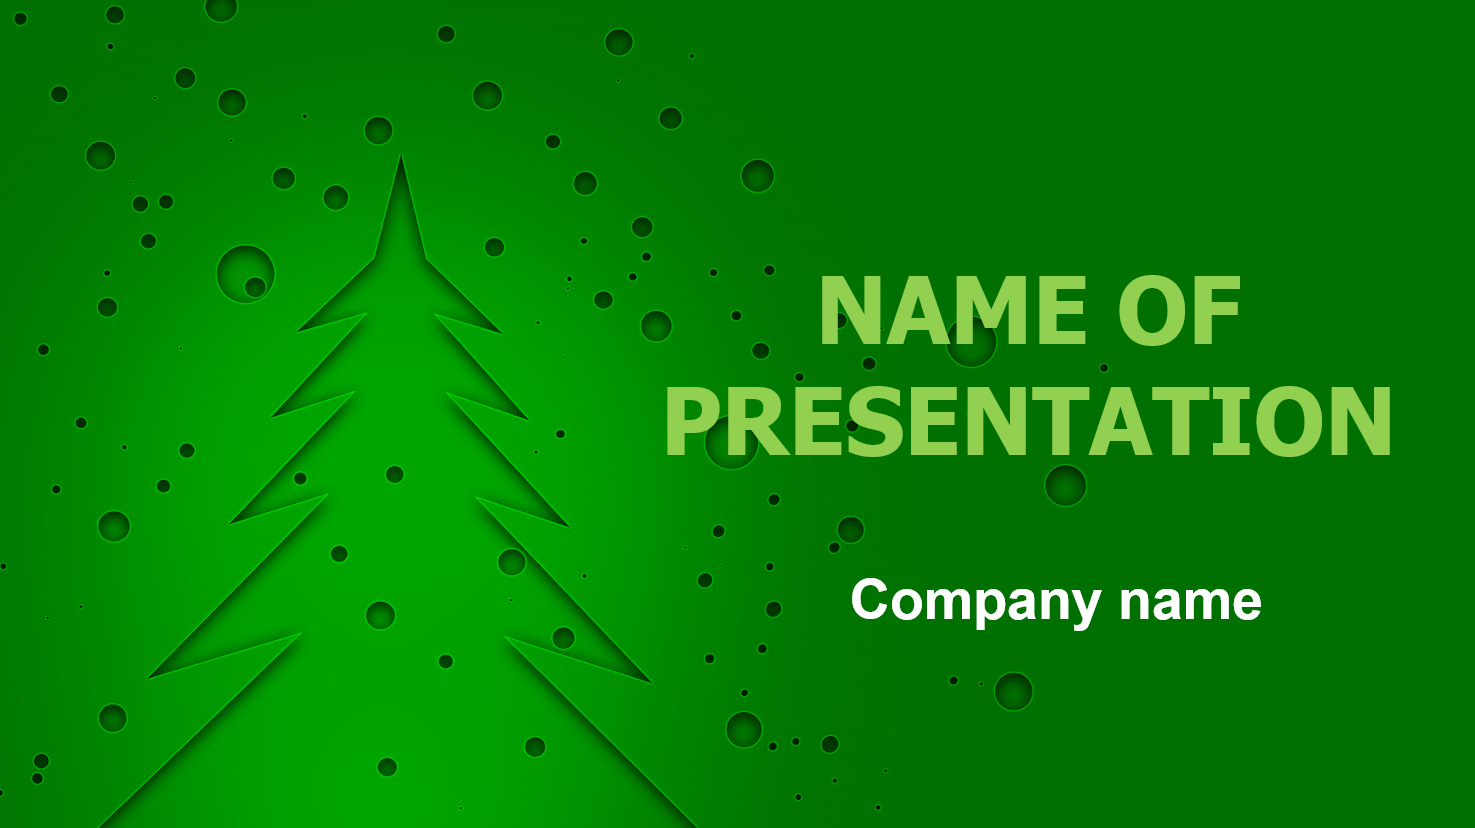 Christmas themed powerpoint template buy tiny christmas tree download free green christmas powerpoint template and theme for green christmas powerpoint template presentation green christmas powerpoint template theme toneelgroepblik Gallery